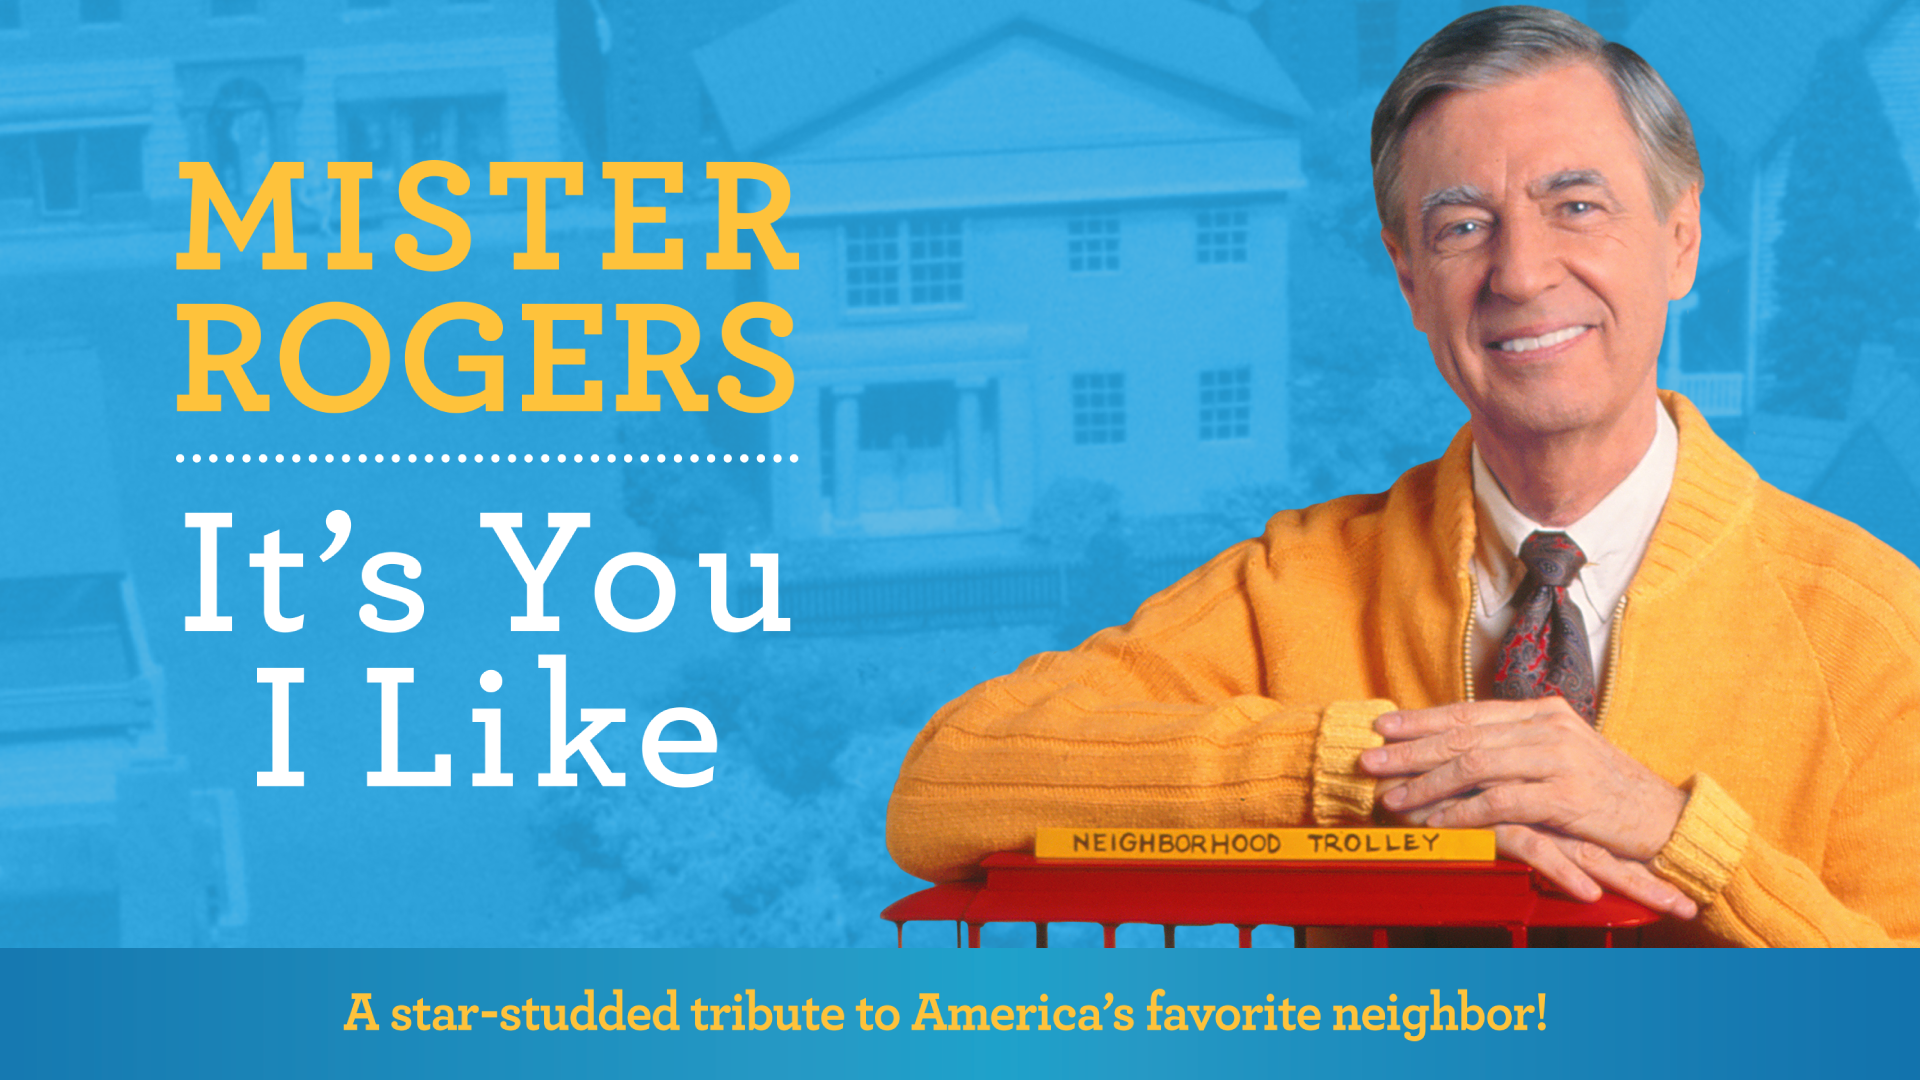 A Celebrity-Filled 50th Anniversary Tribute to Mr. Rogers Will Air on PBS in March